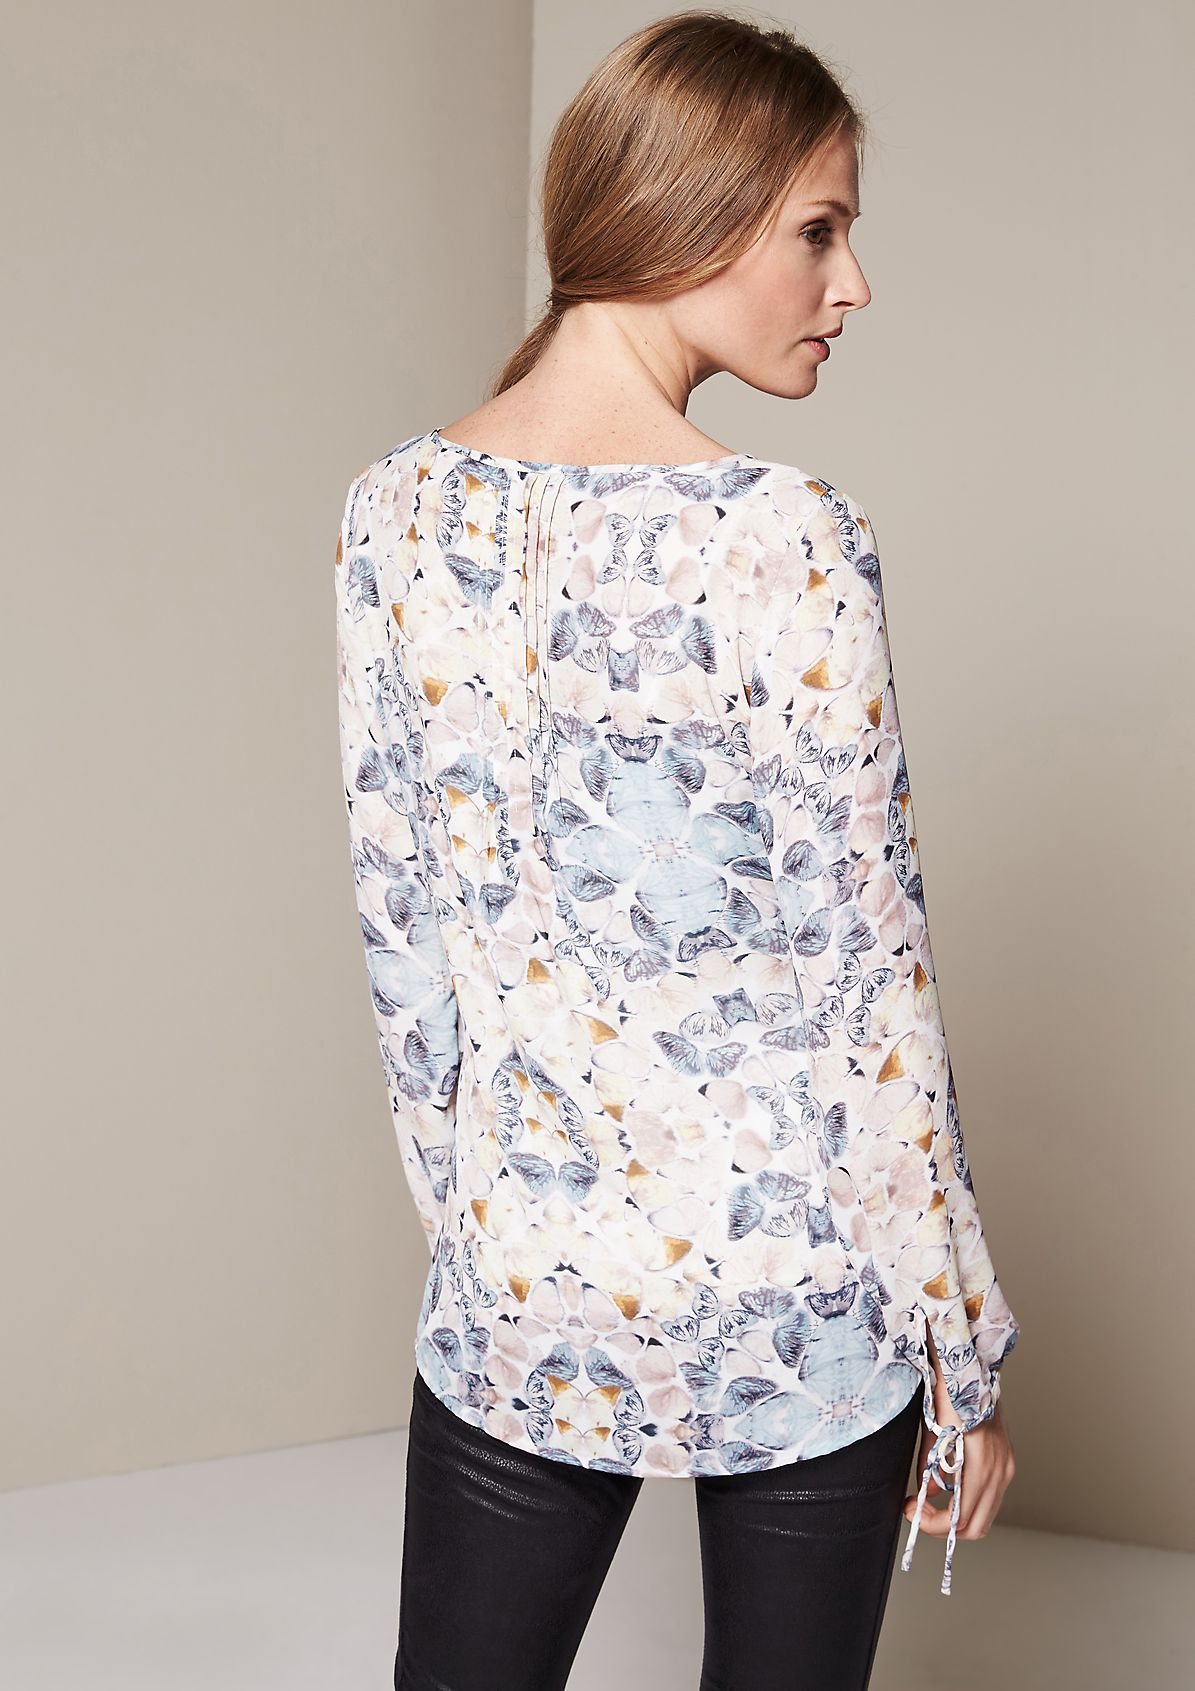 Lightweight chiffon blouse with an elaborate all-over print from s.Oliver